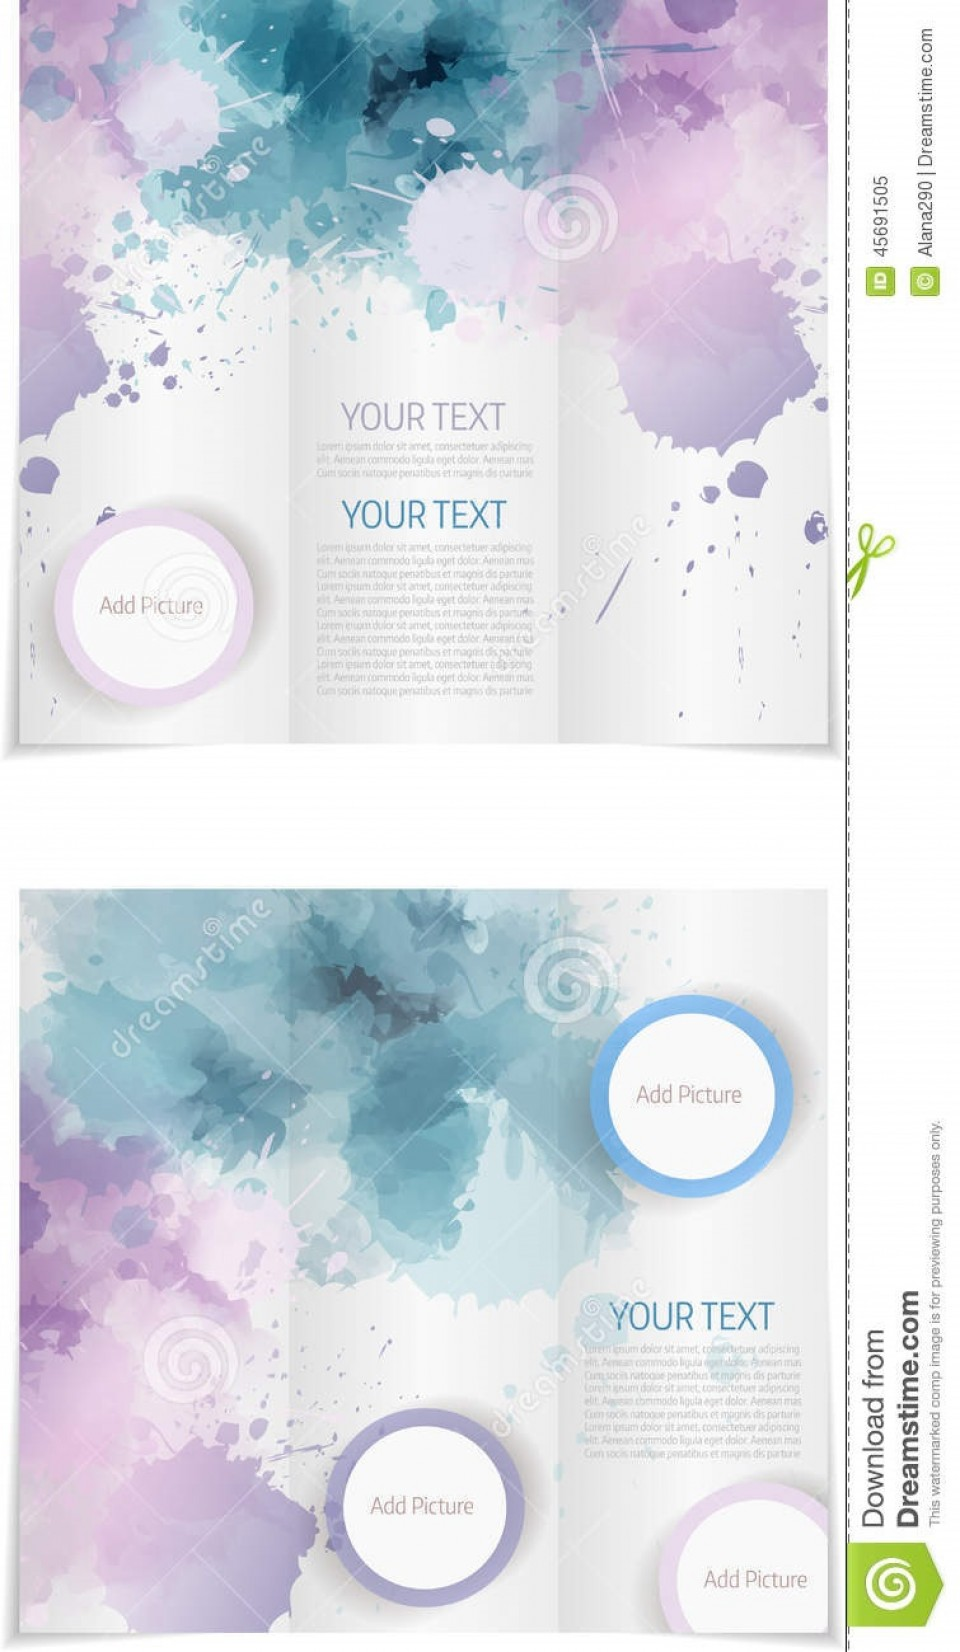 009 Stupendou Publisher Brochure Template Free Inspiration  Tri Fold Download Microsoft M960